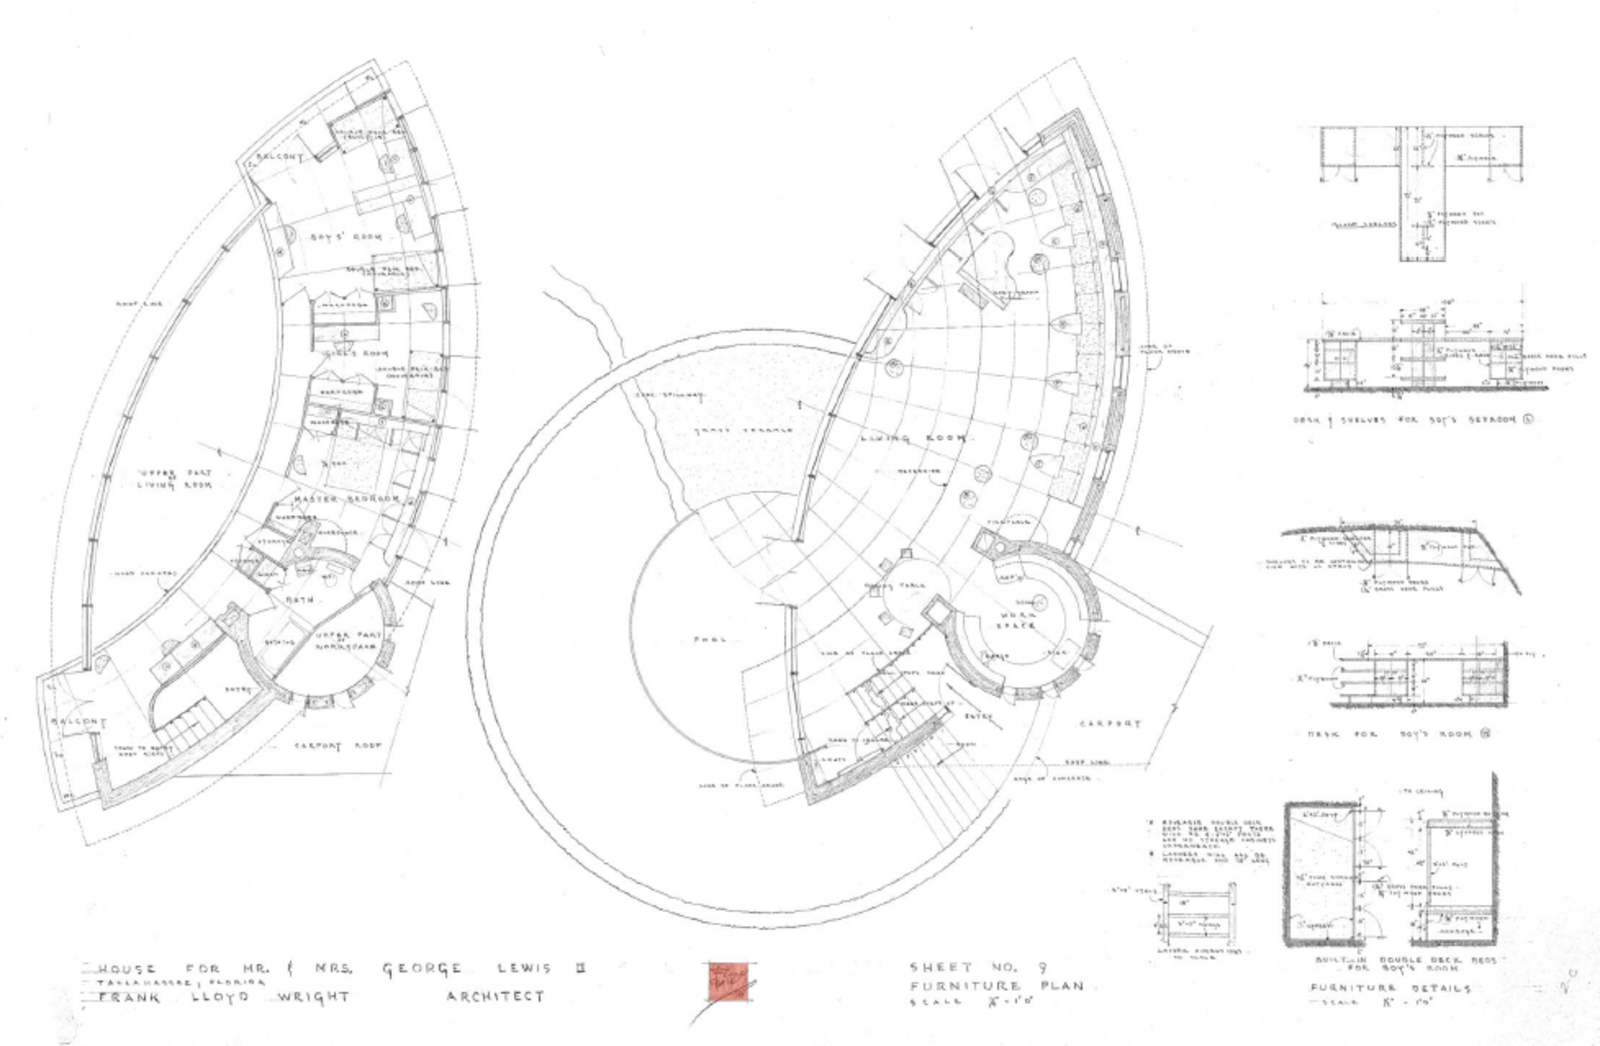 The floor plan for the Spring House. Frank Lloyd Wright's Endangered Spring House  by Allie Weiss